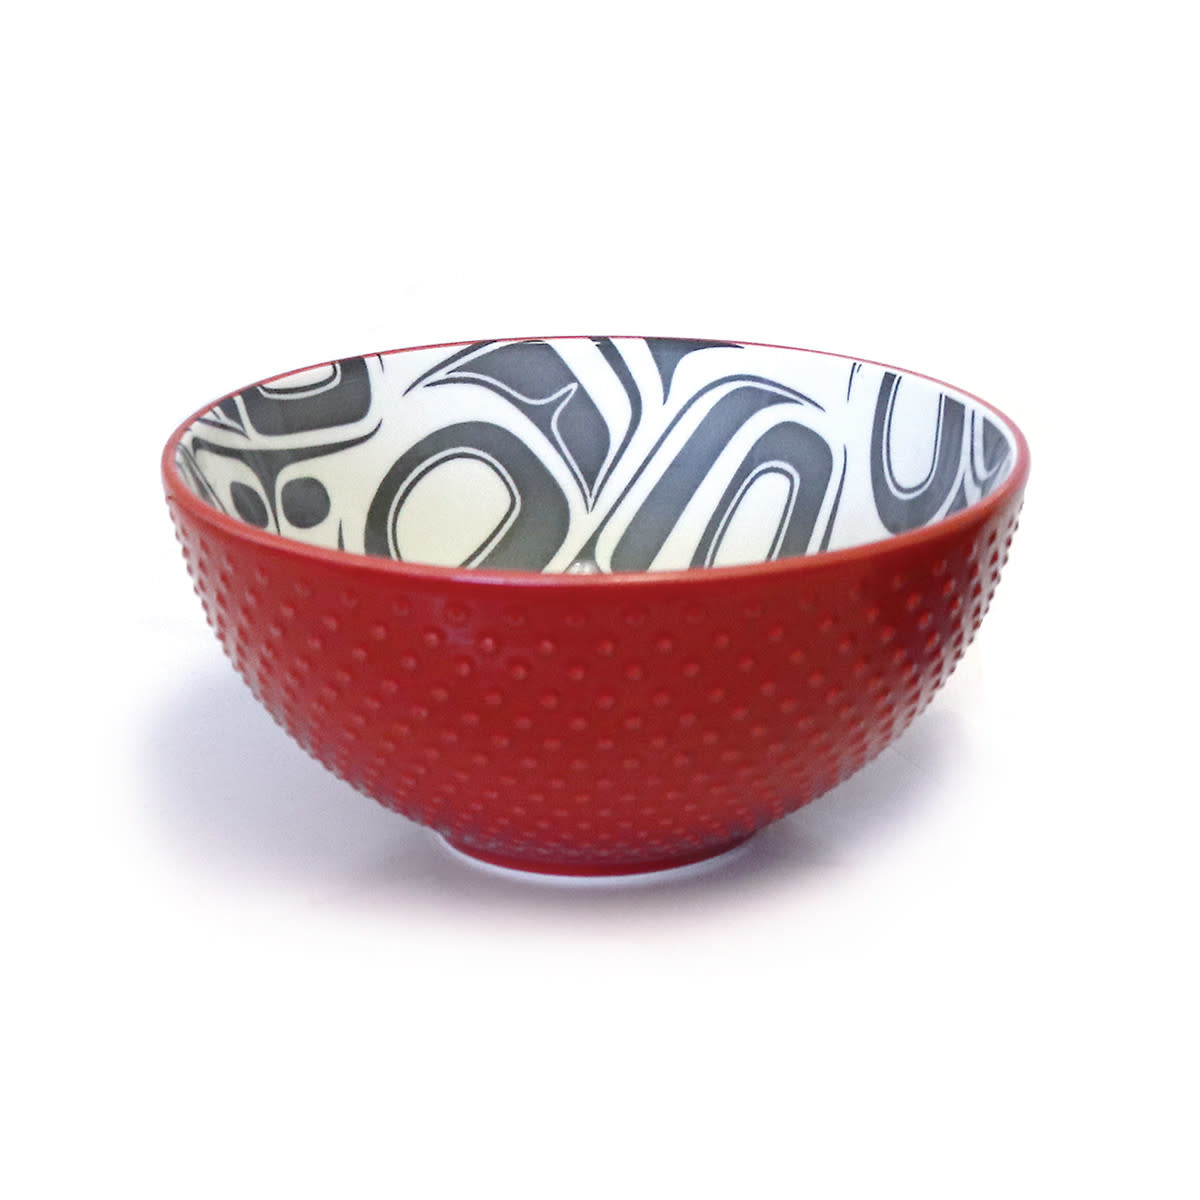 Porcelain Art Bowl - Medium-5